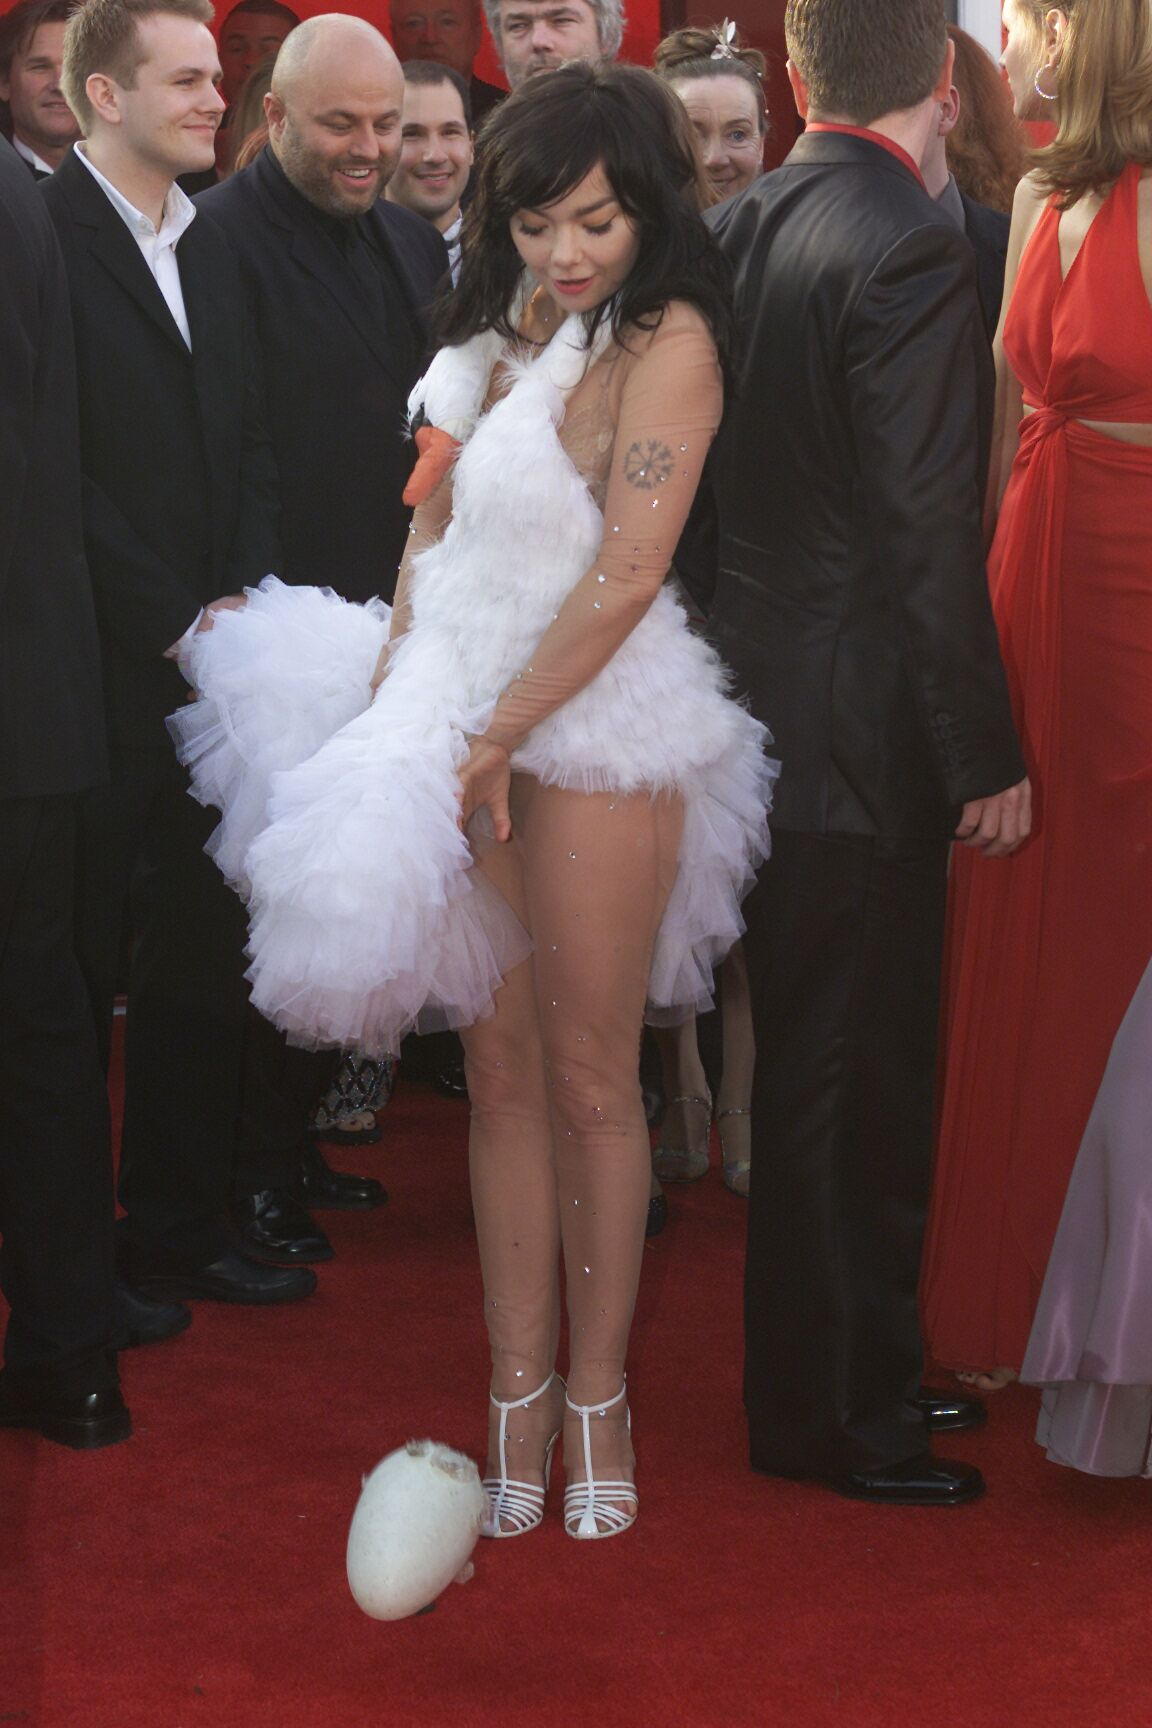 """2001: When Björk arrived in a swan dress and laid an egg on the red carpet. People were stunned when Björk walked the red carpet in a frilly swan dress—and even more so when she strategically """"laid"""" six ostrich eggs on the red carpet."""